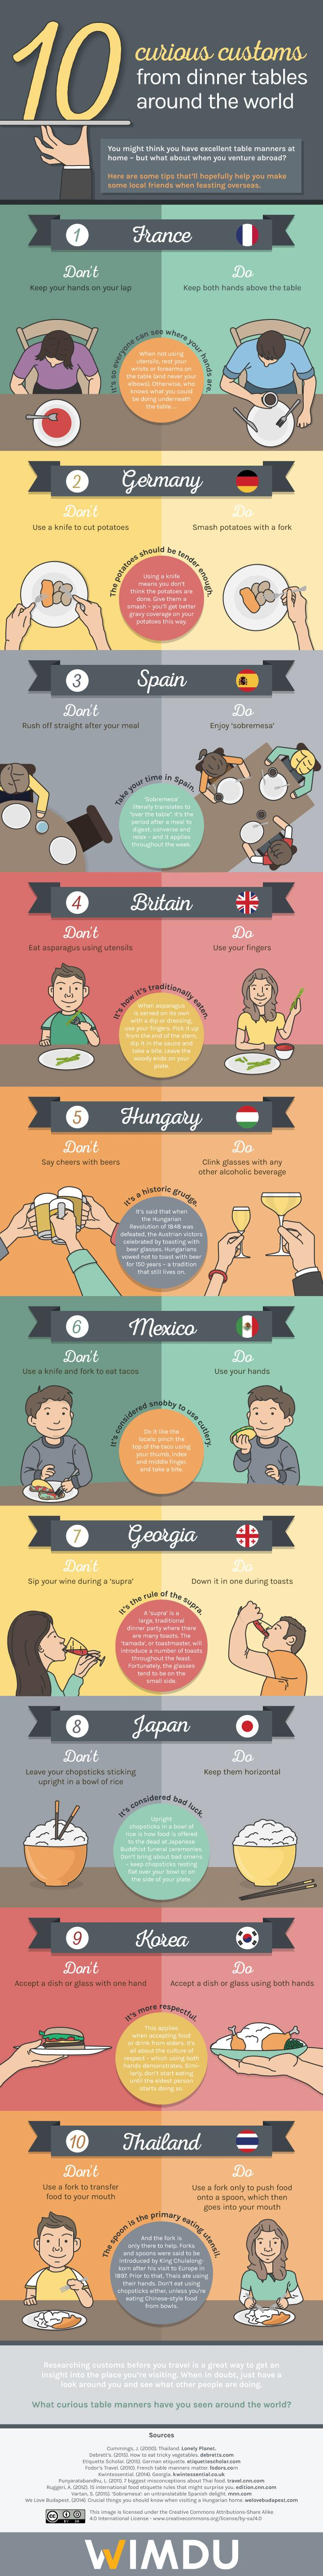 10-curious-customs-from-dinner-tables-around-the-world-FINAL